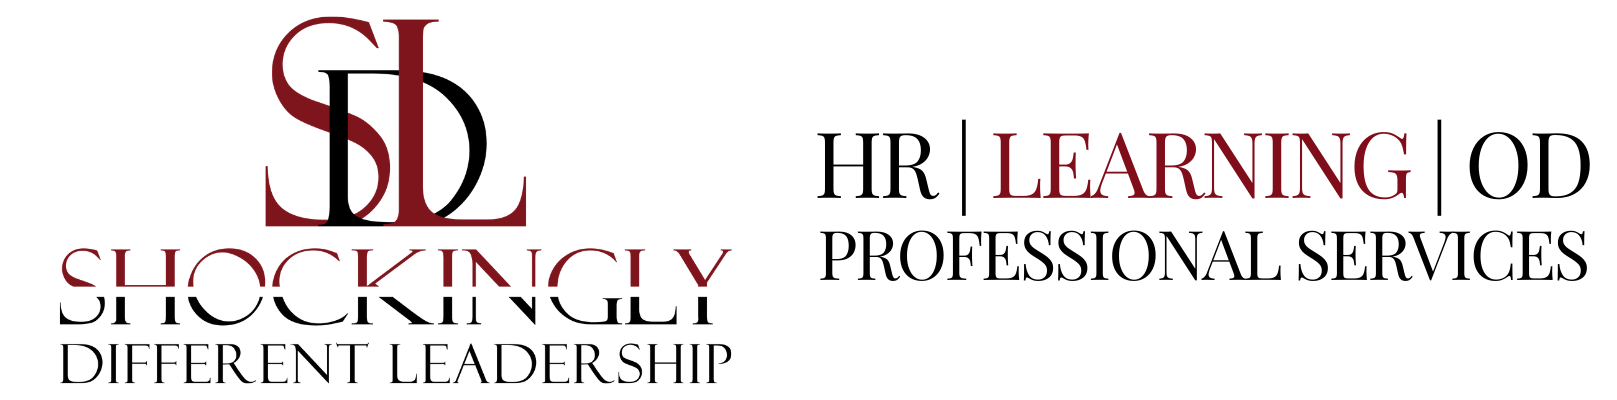 Talent Development, HR, and OD Consulting| Shockingly Different Leadership